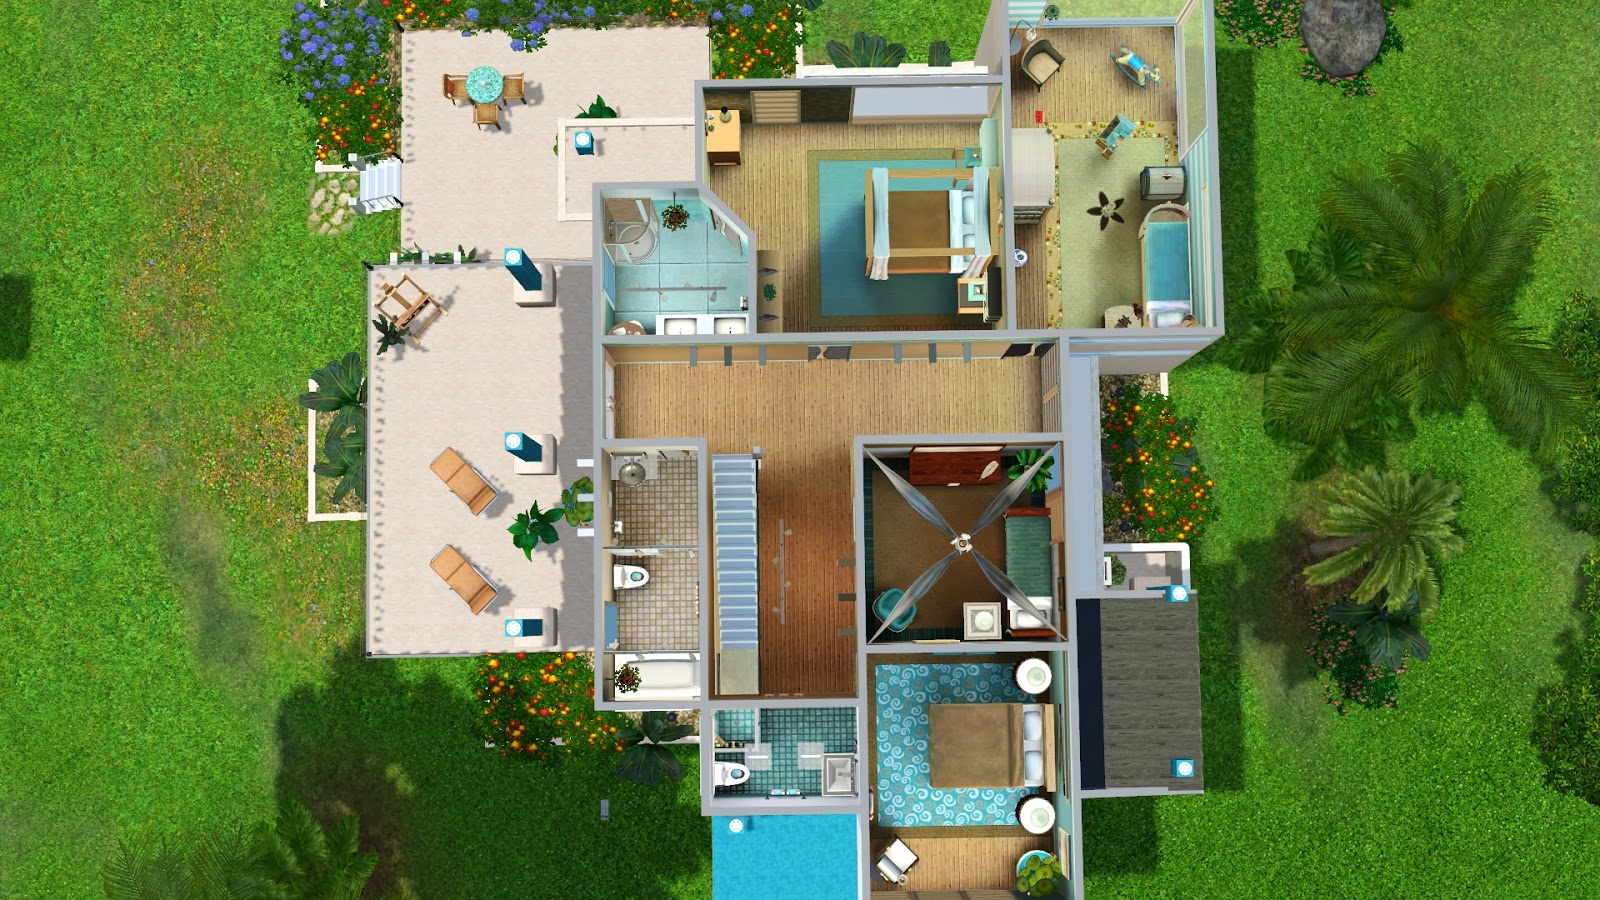 sims 4 how to get to 2nd floor